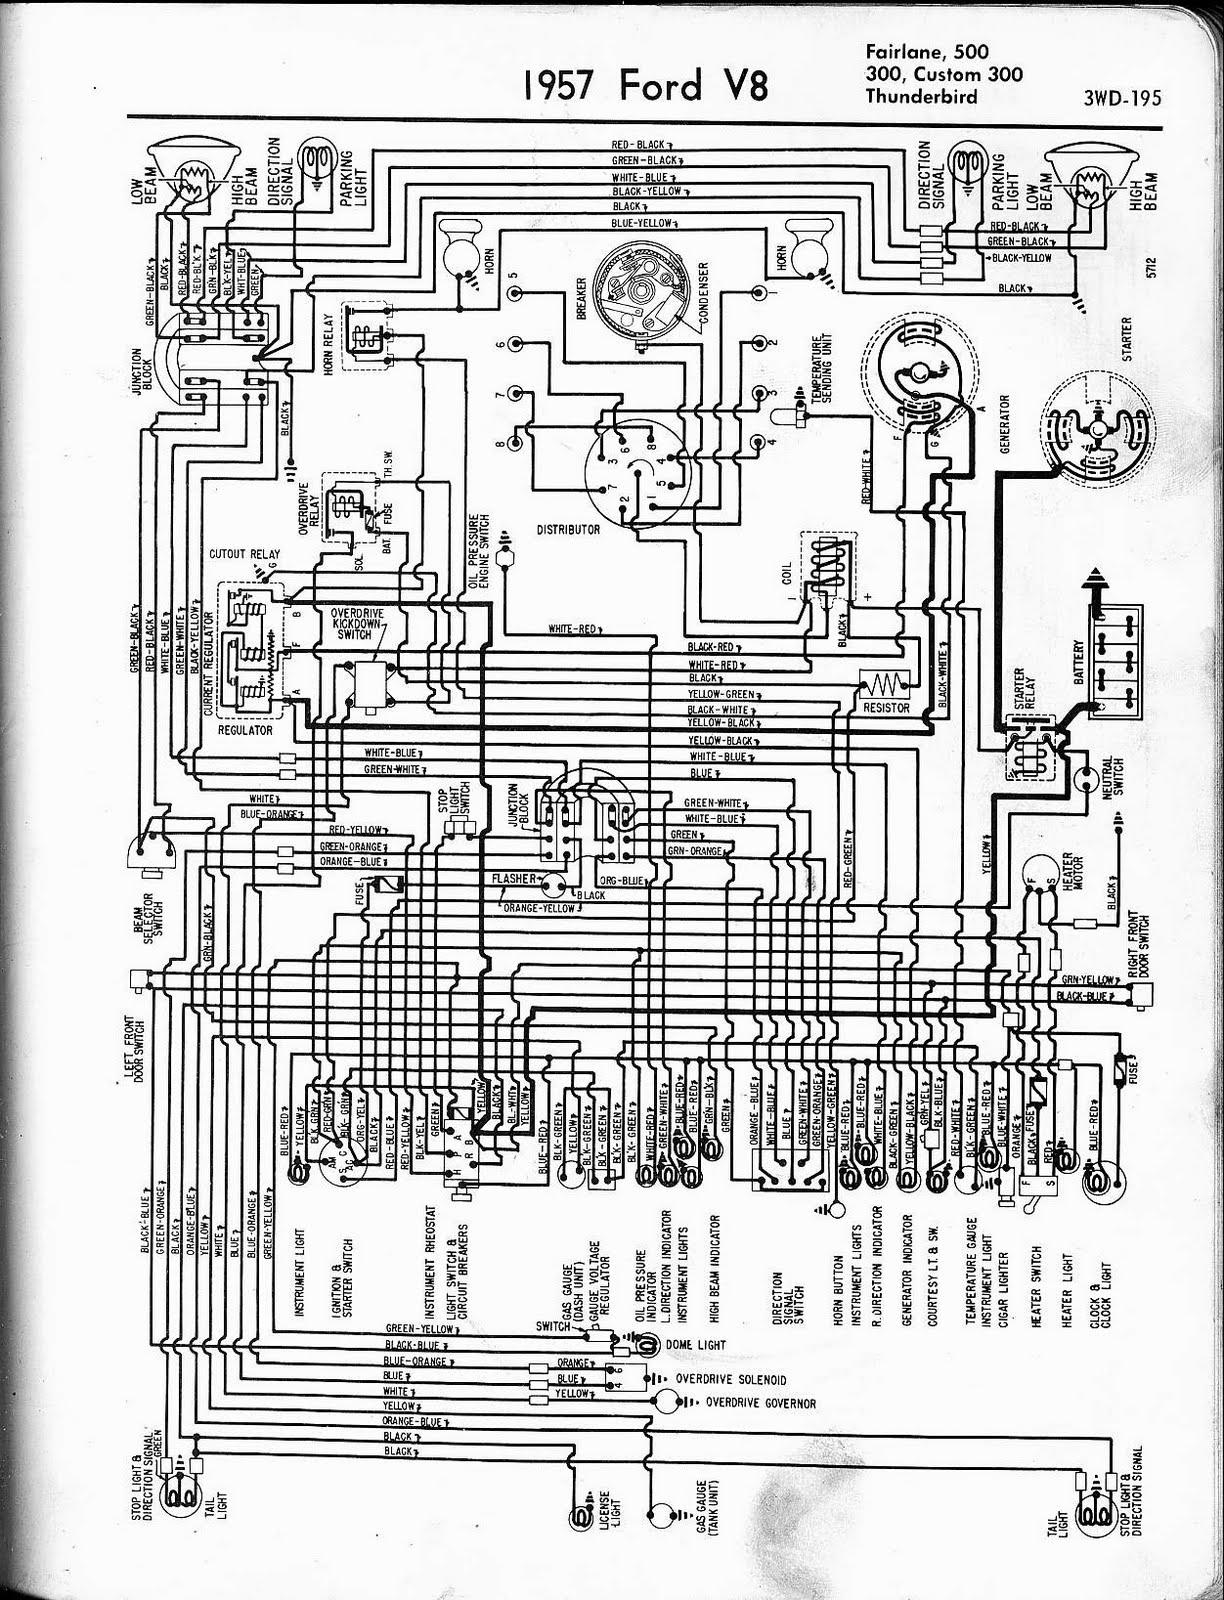 medium resolution of free auto wiring diagram 1957 ford v8 fairlane custom300